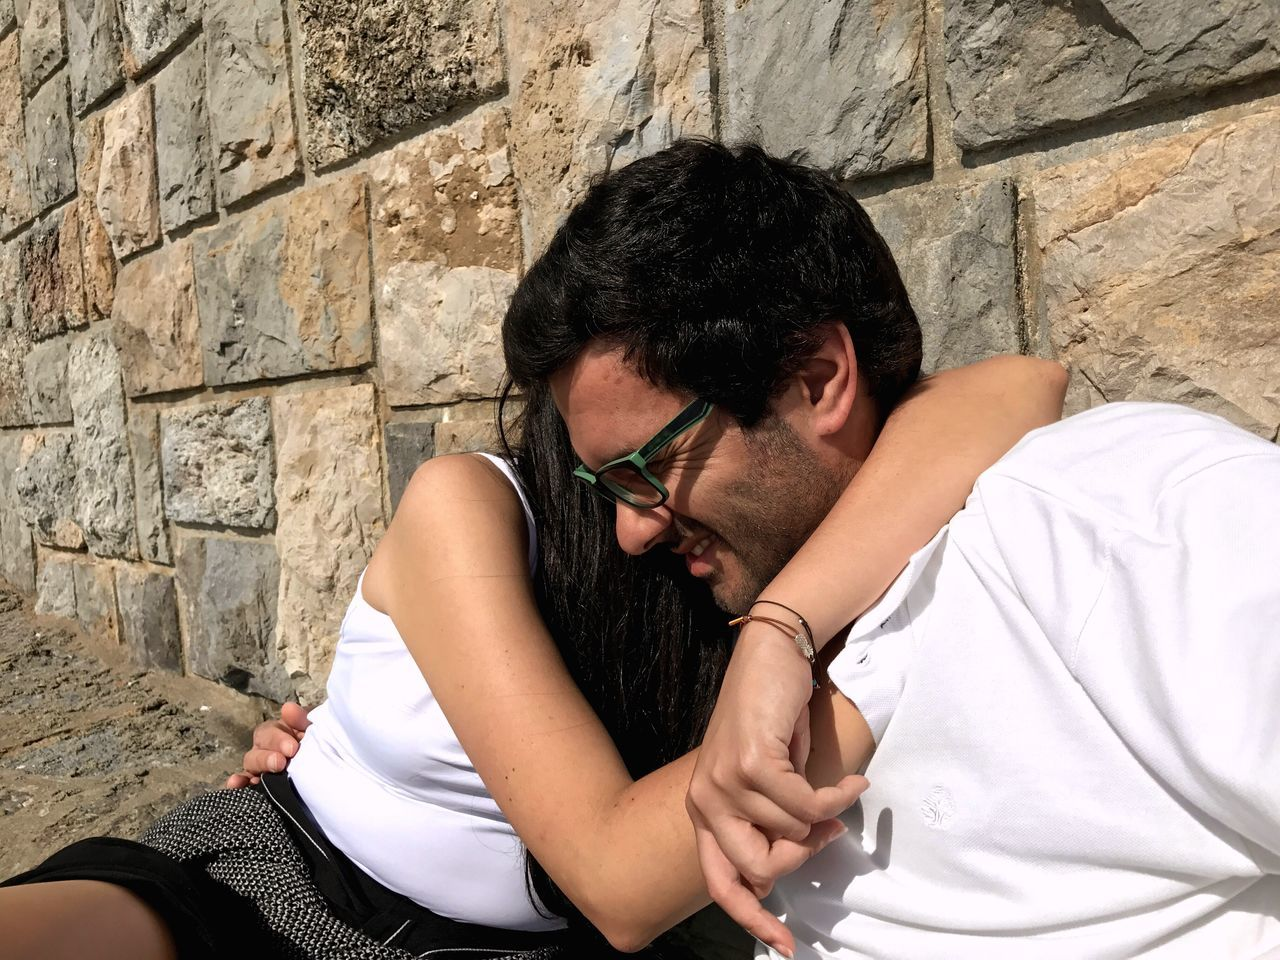 Couples Embracing While Sitting Against Stone Wall